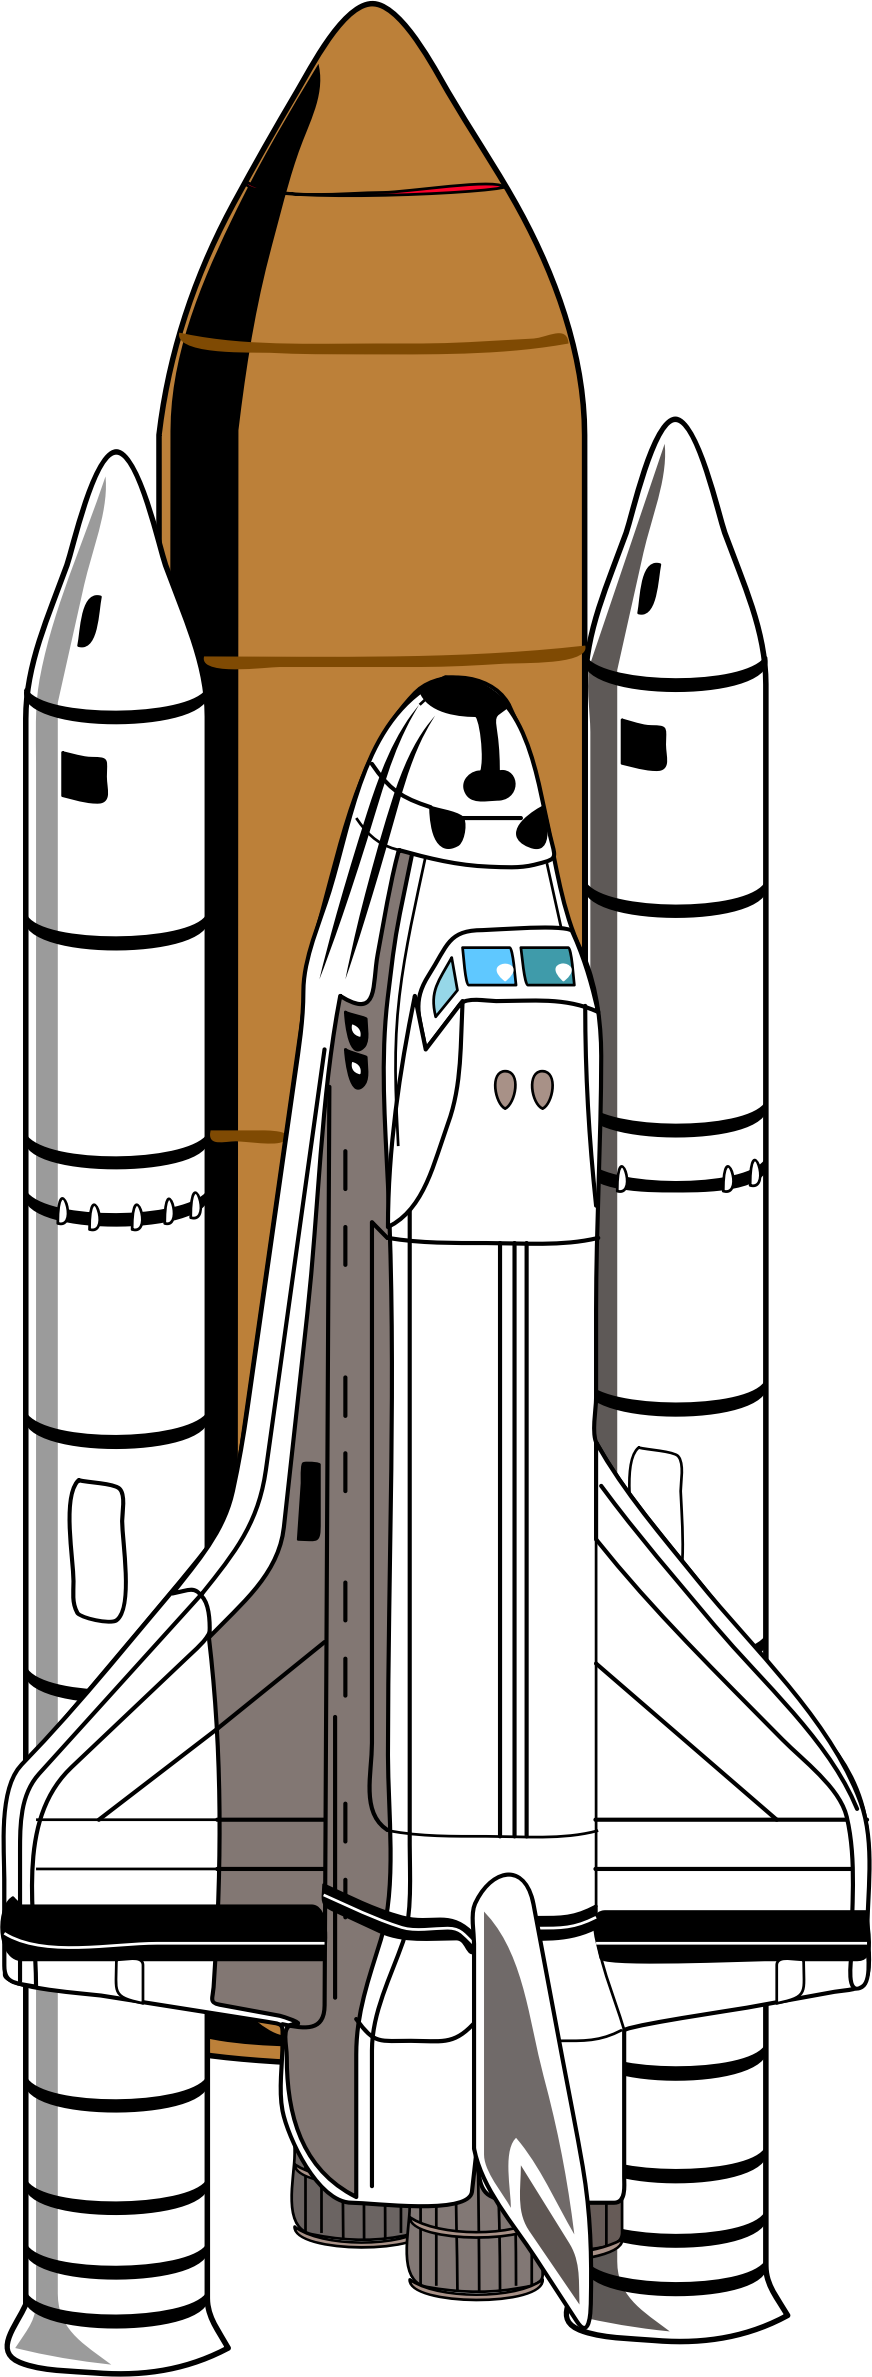 space shuttle by cactus cowboy